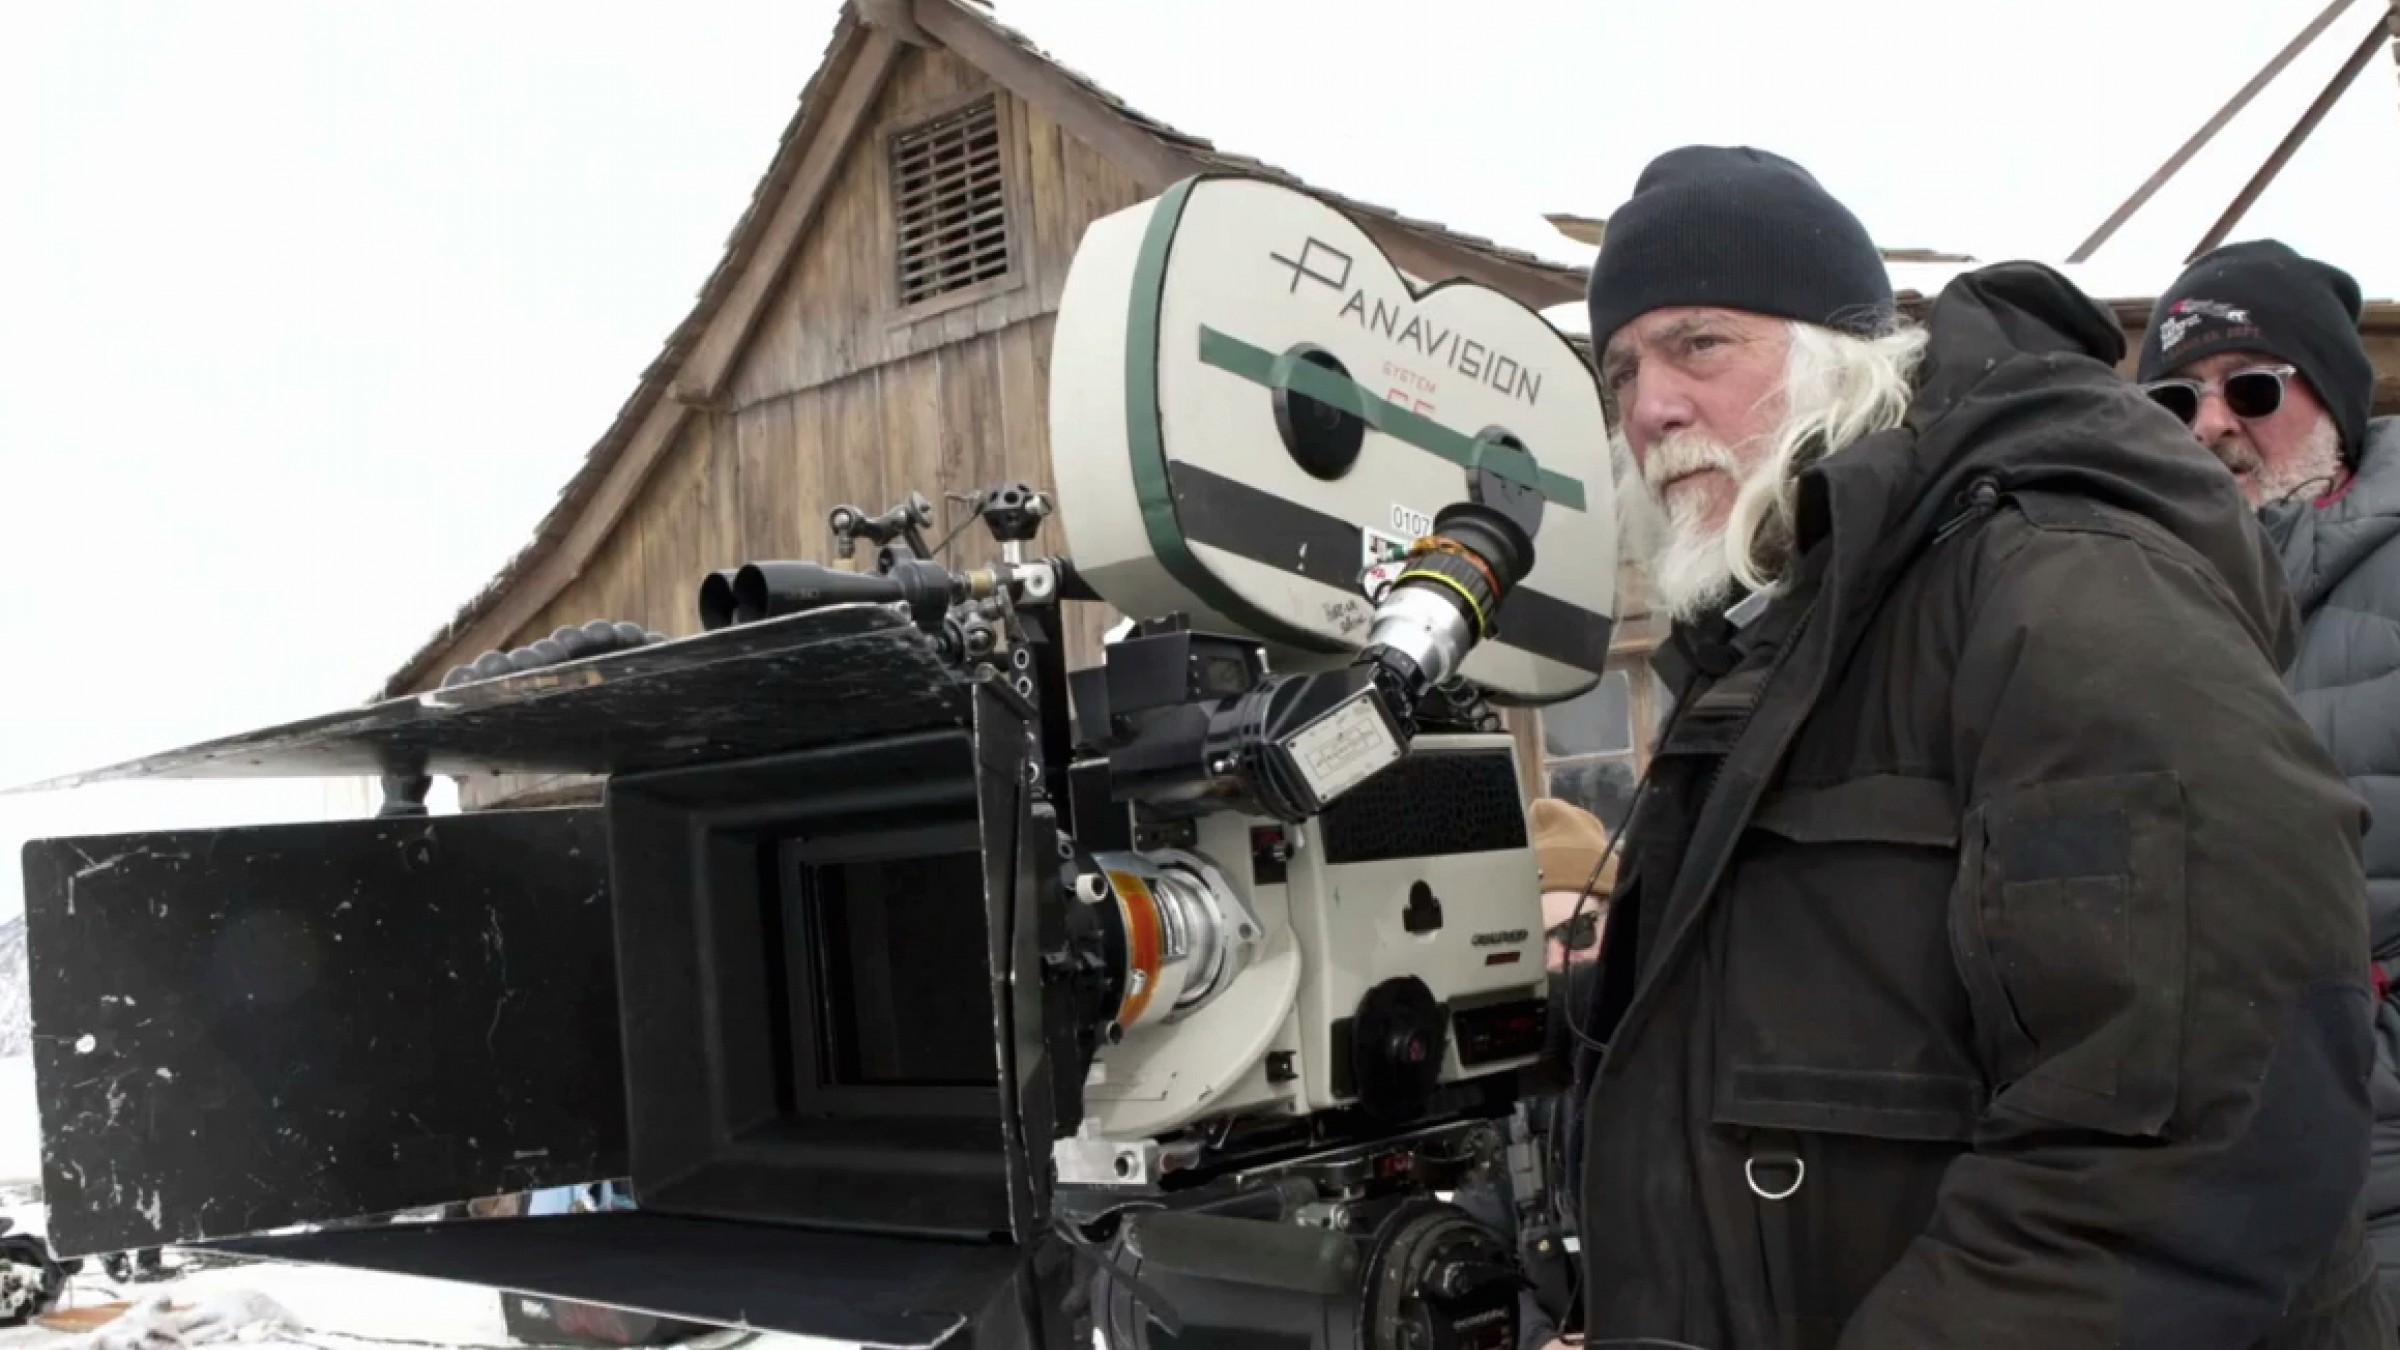 How Tarantino's 'The Hateful Eight' Brought Back 65mm Panavision History